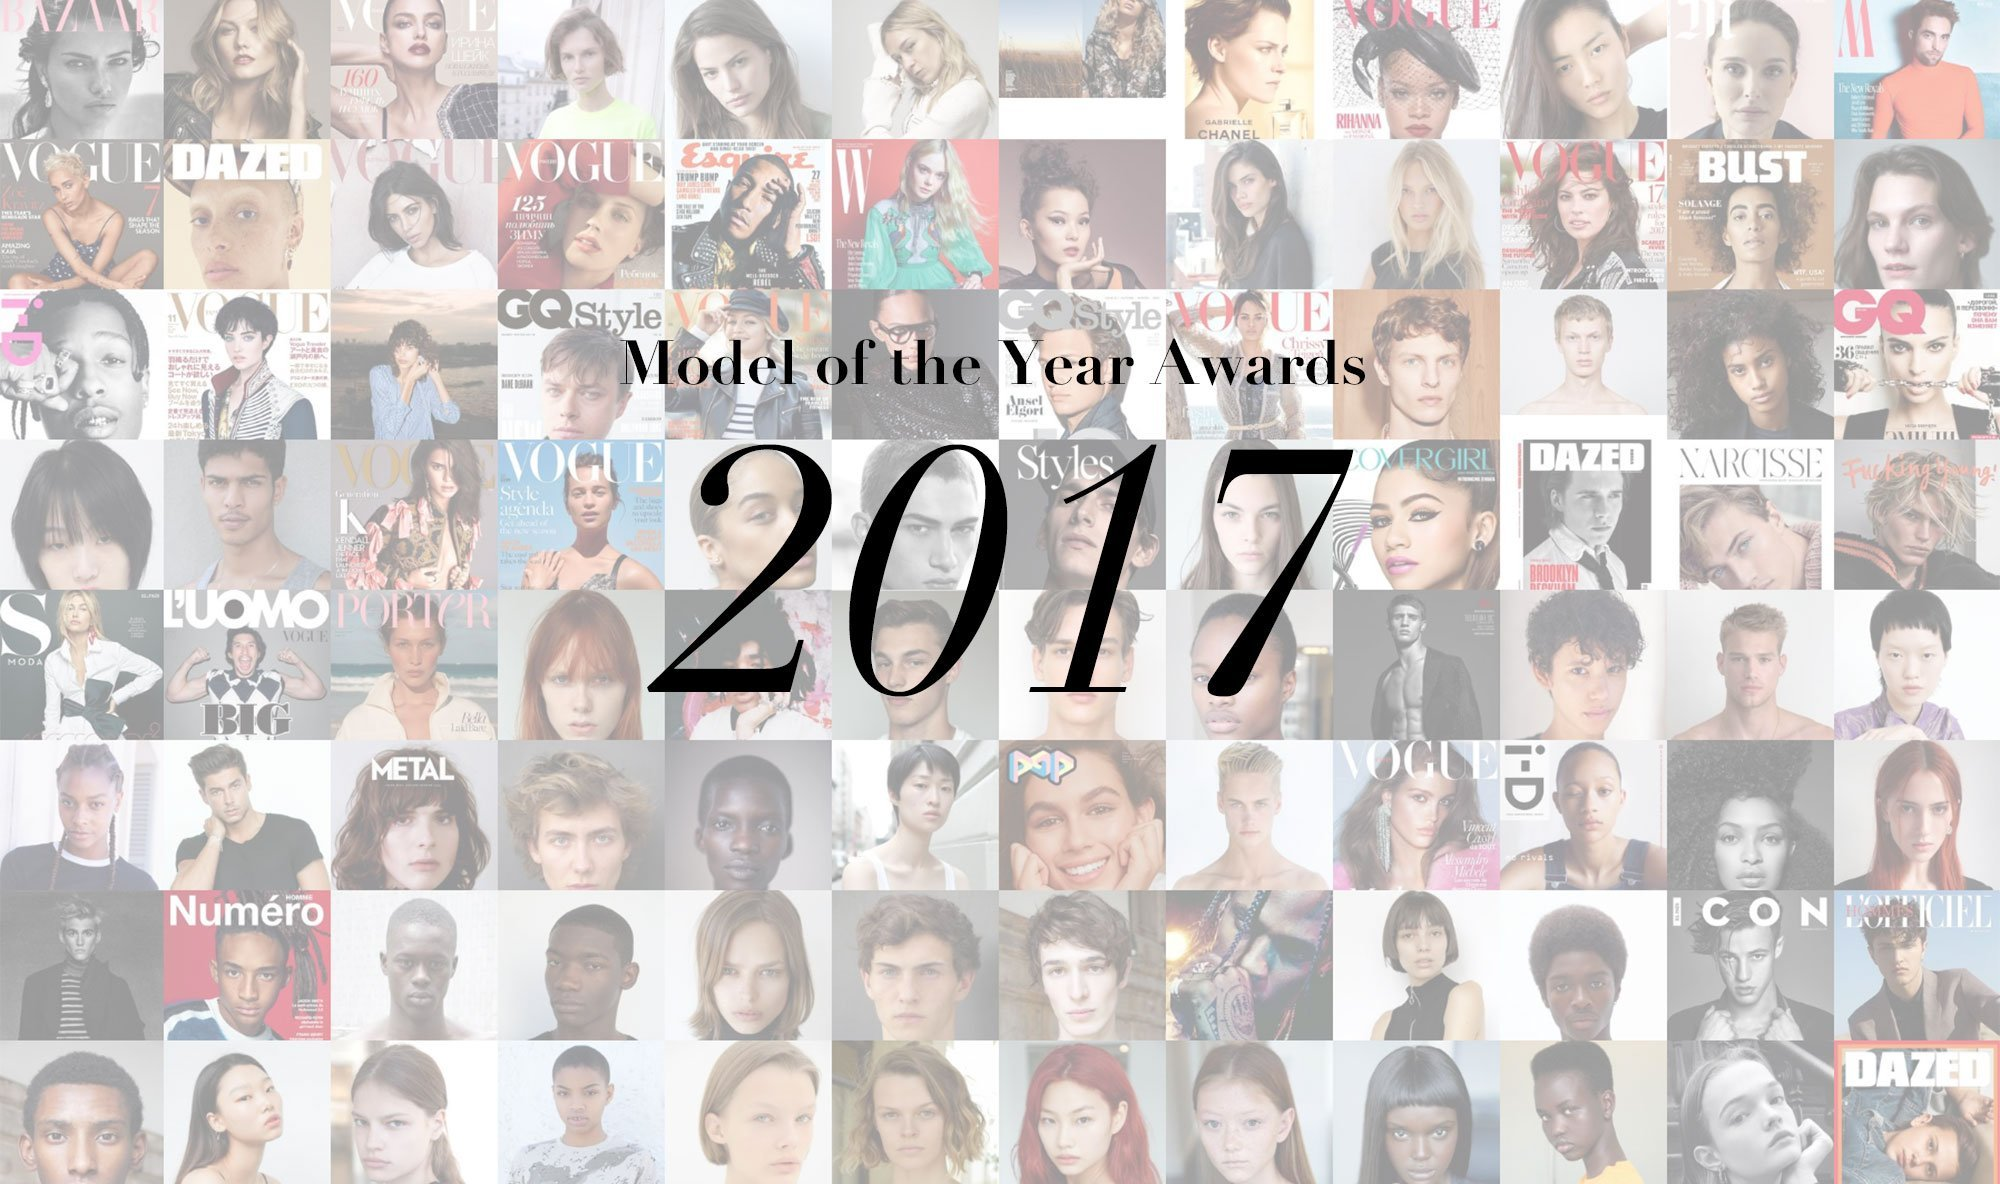 Model of the Year Awards 2017